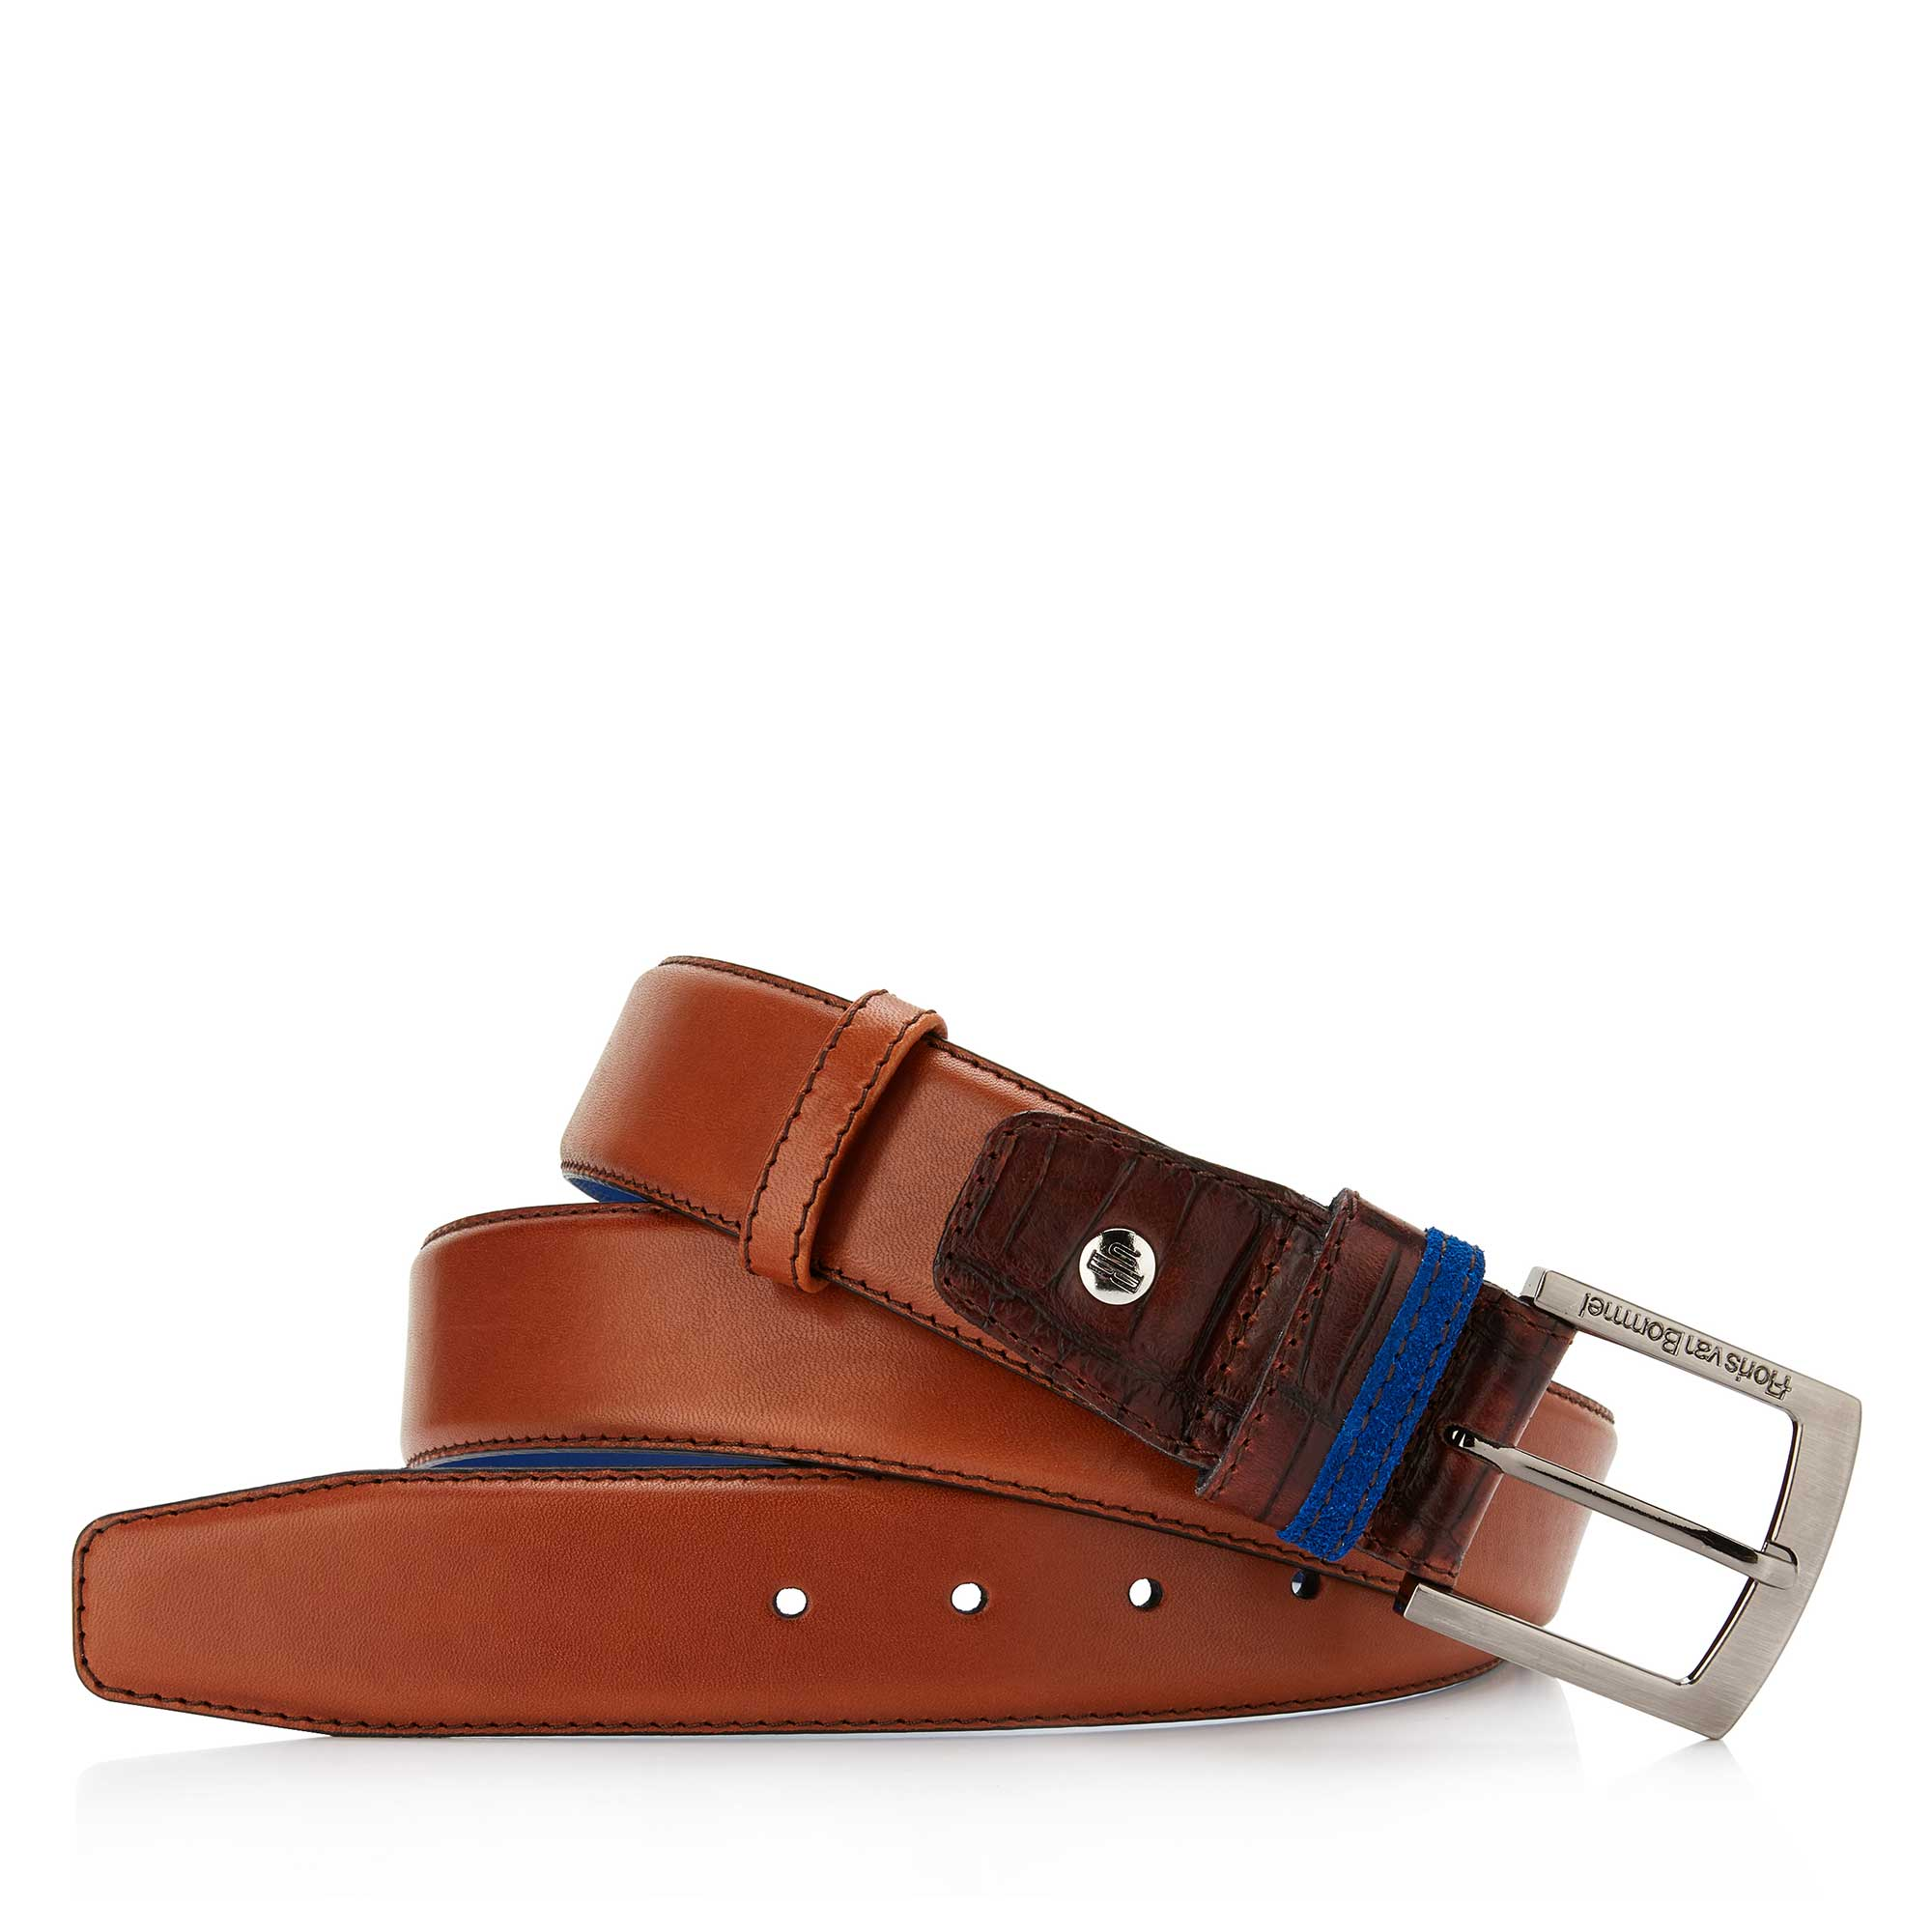 75004/01 - Floris van Bommel cognac leather men's belt